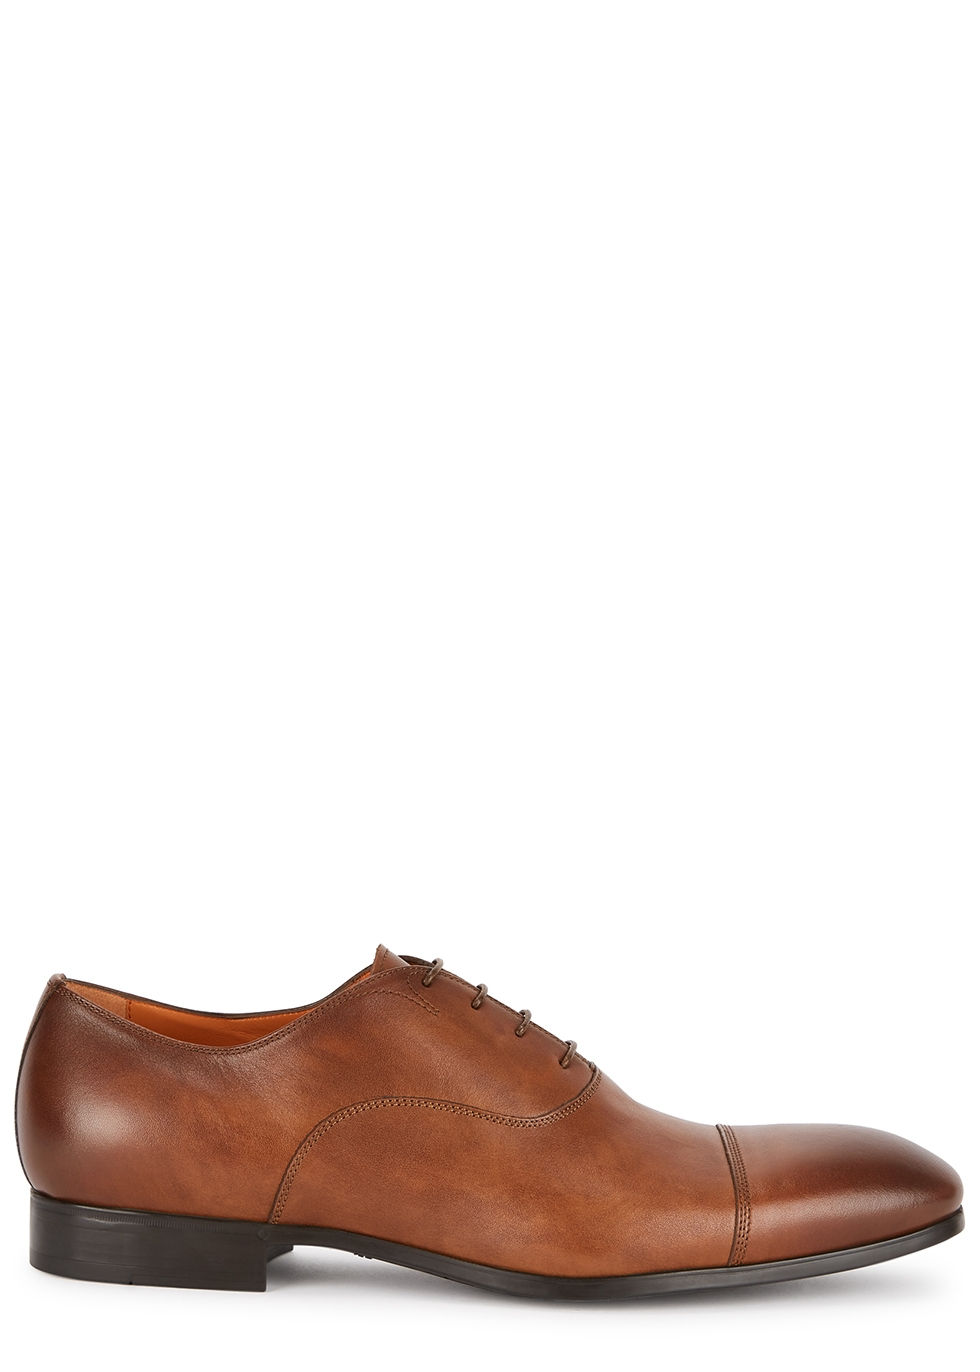 Simon brown leather Oxford shoes